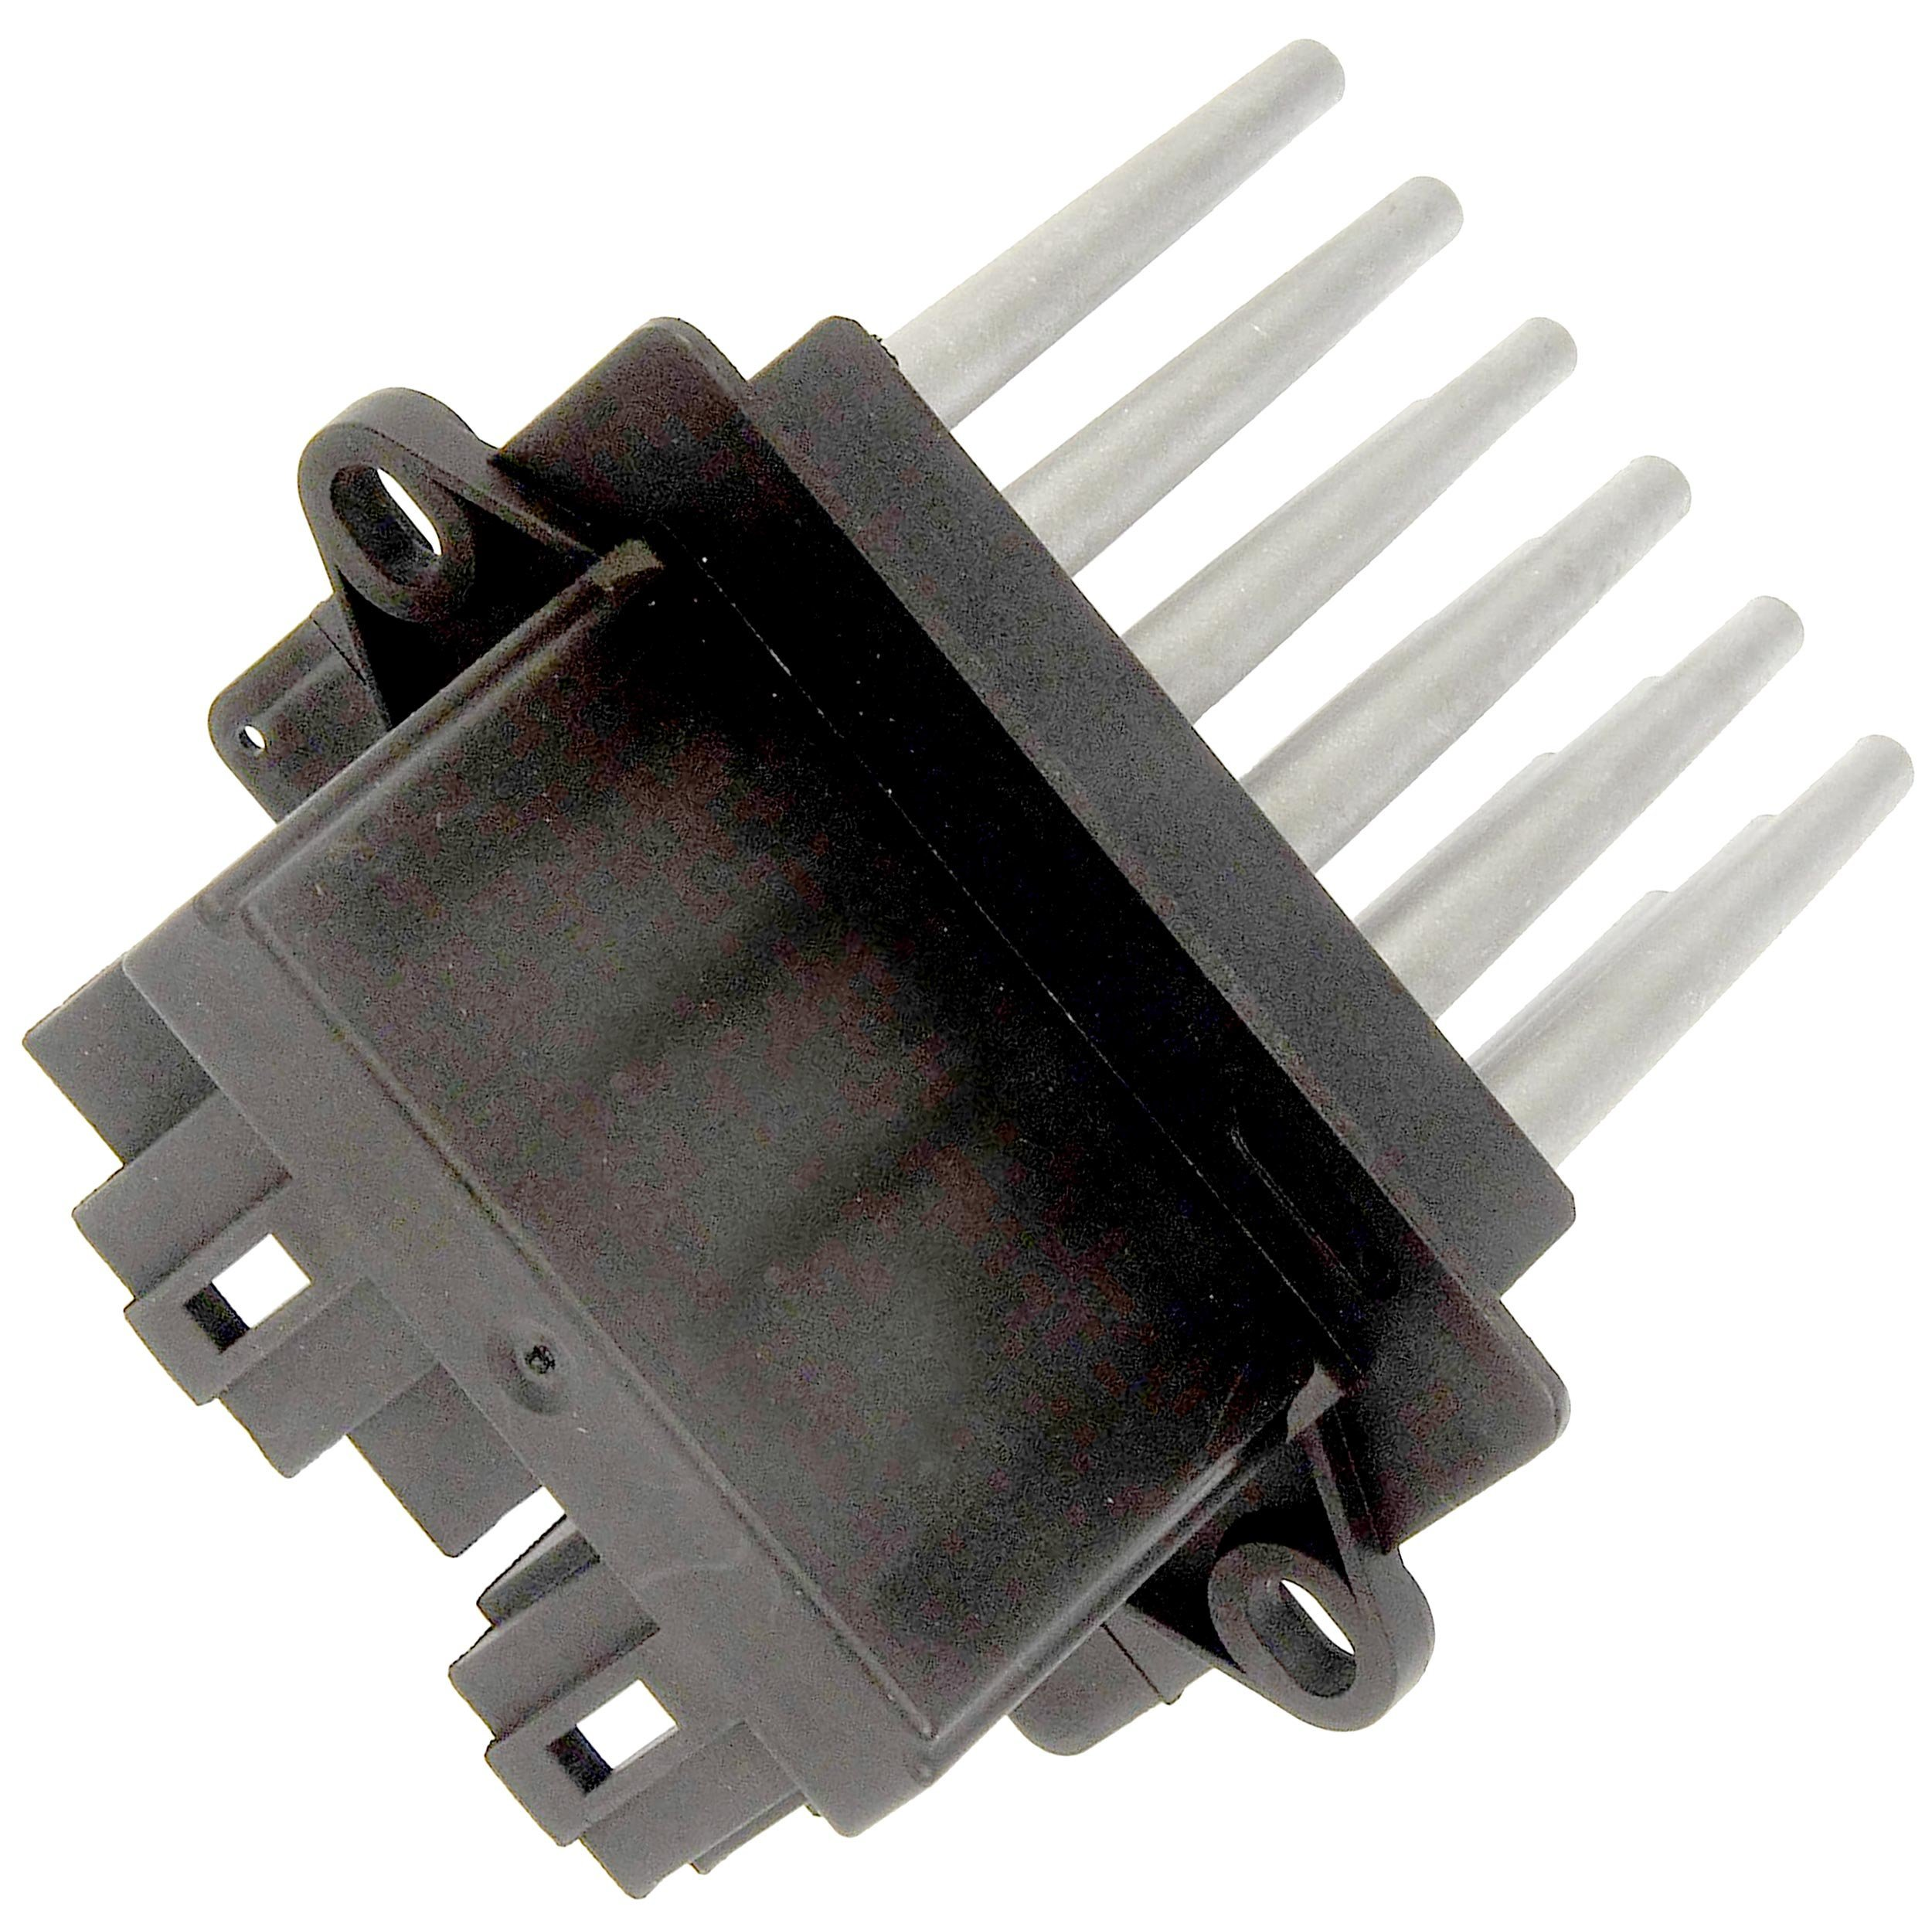 APDTY 084138 Blower Motor Fan Speed Control Resistor Fits Select Chrysler Dodge Jeep Models With ATC Automatic Temperature Control (Replaces 5179985AA, 4885482AC) by APDTY